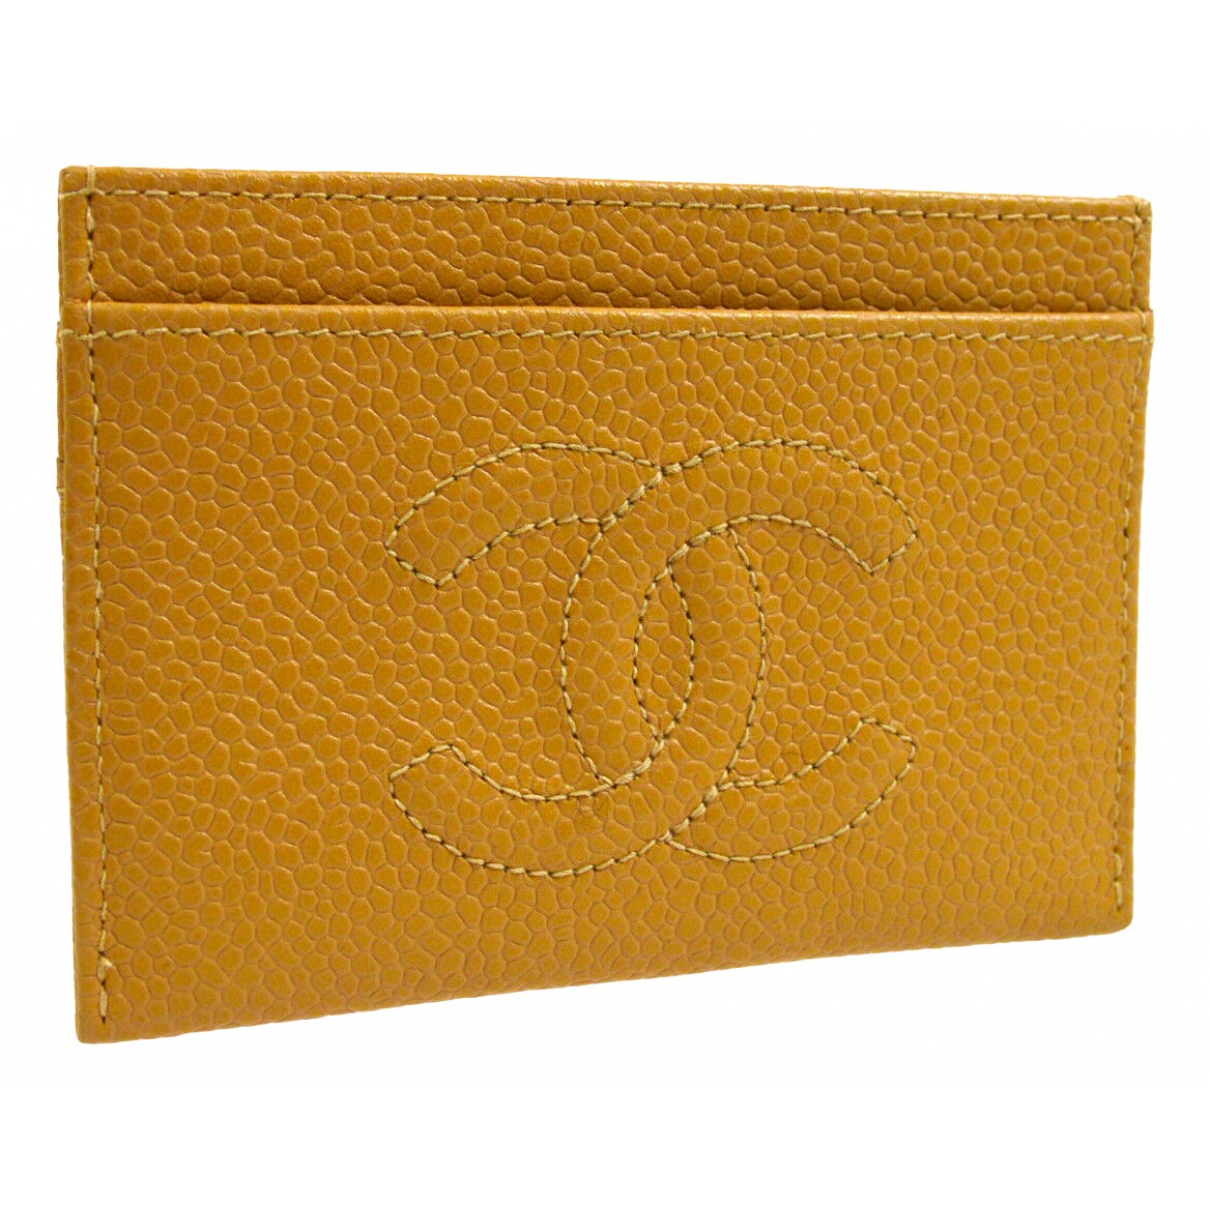 Chanel \N Yellow Leather Purses, wallet & cases for Women \N